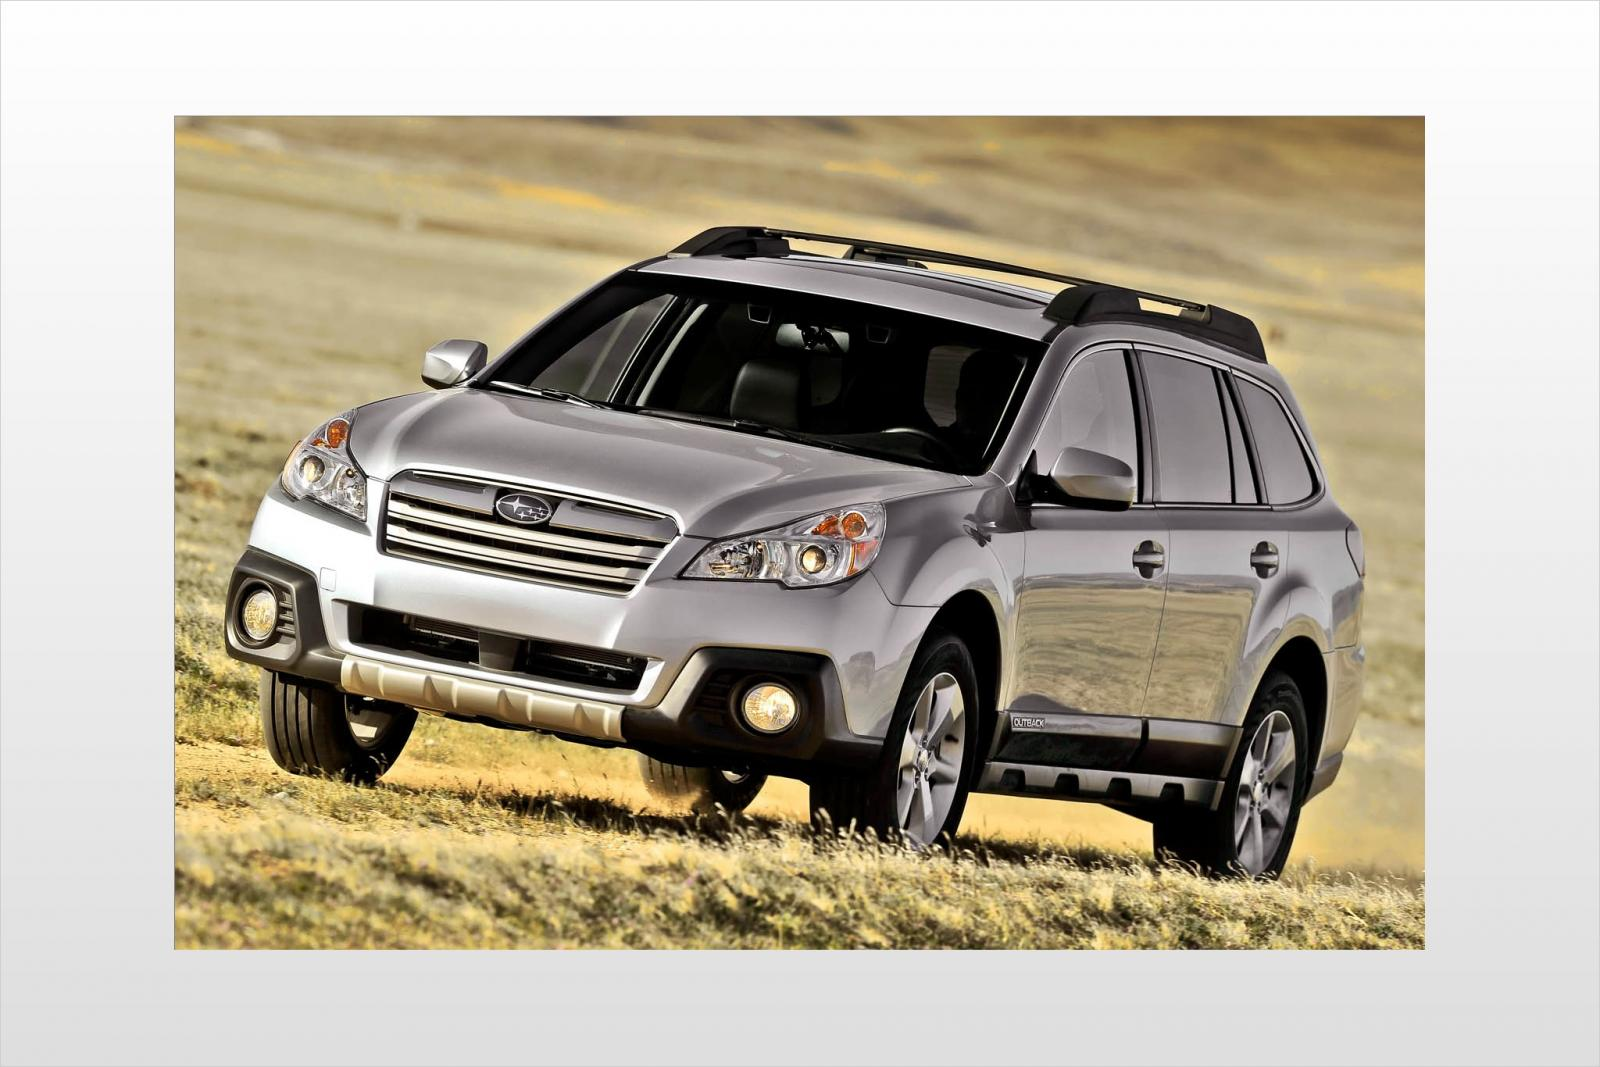 2014 subaru outback information and photos zombiedrive. Black Bedroom Furniture Sets. Home Design Ideas